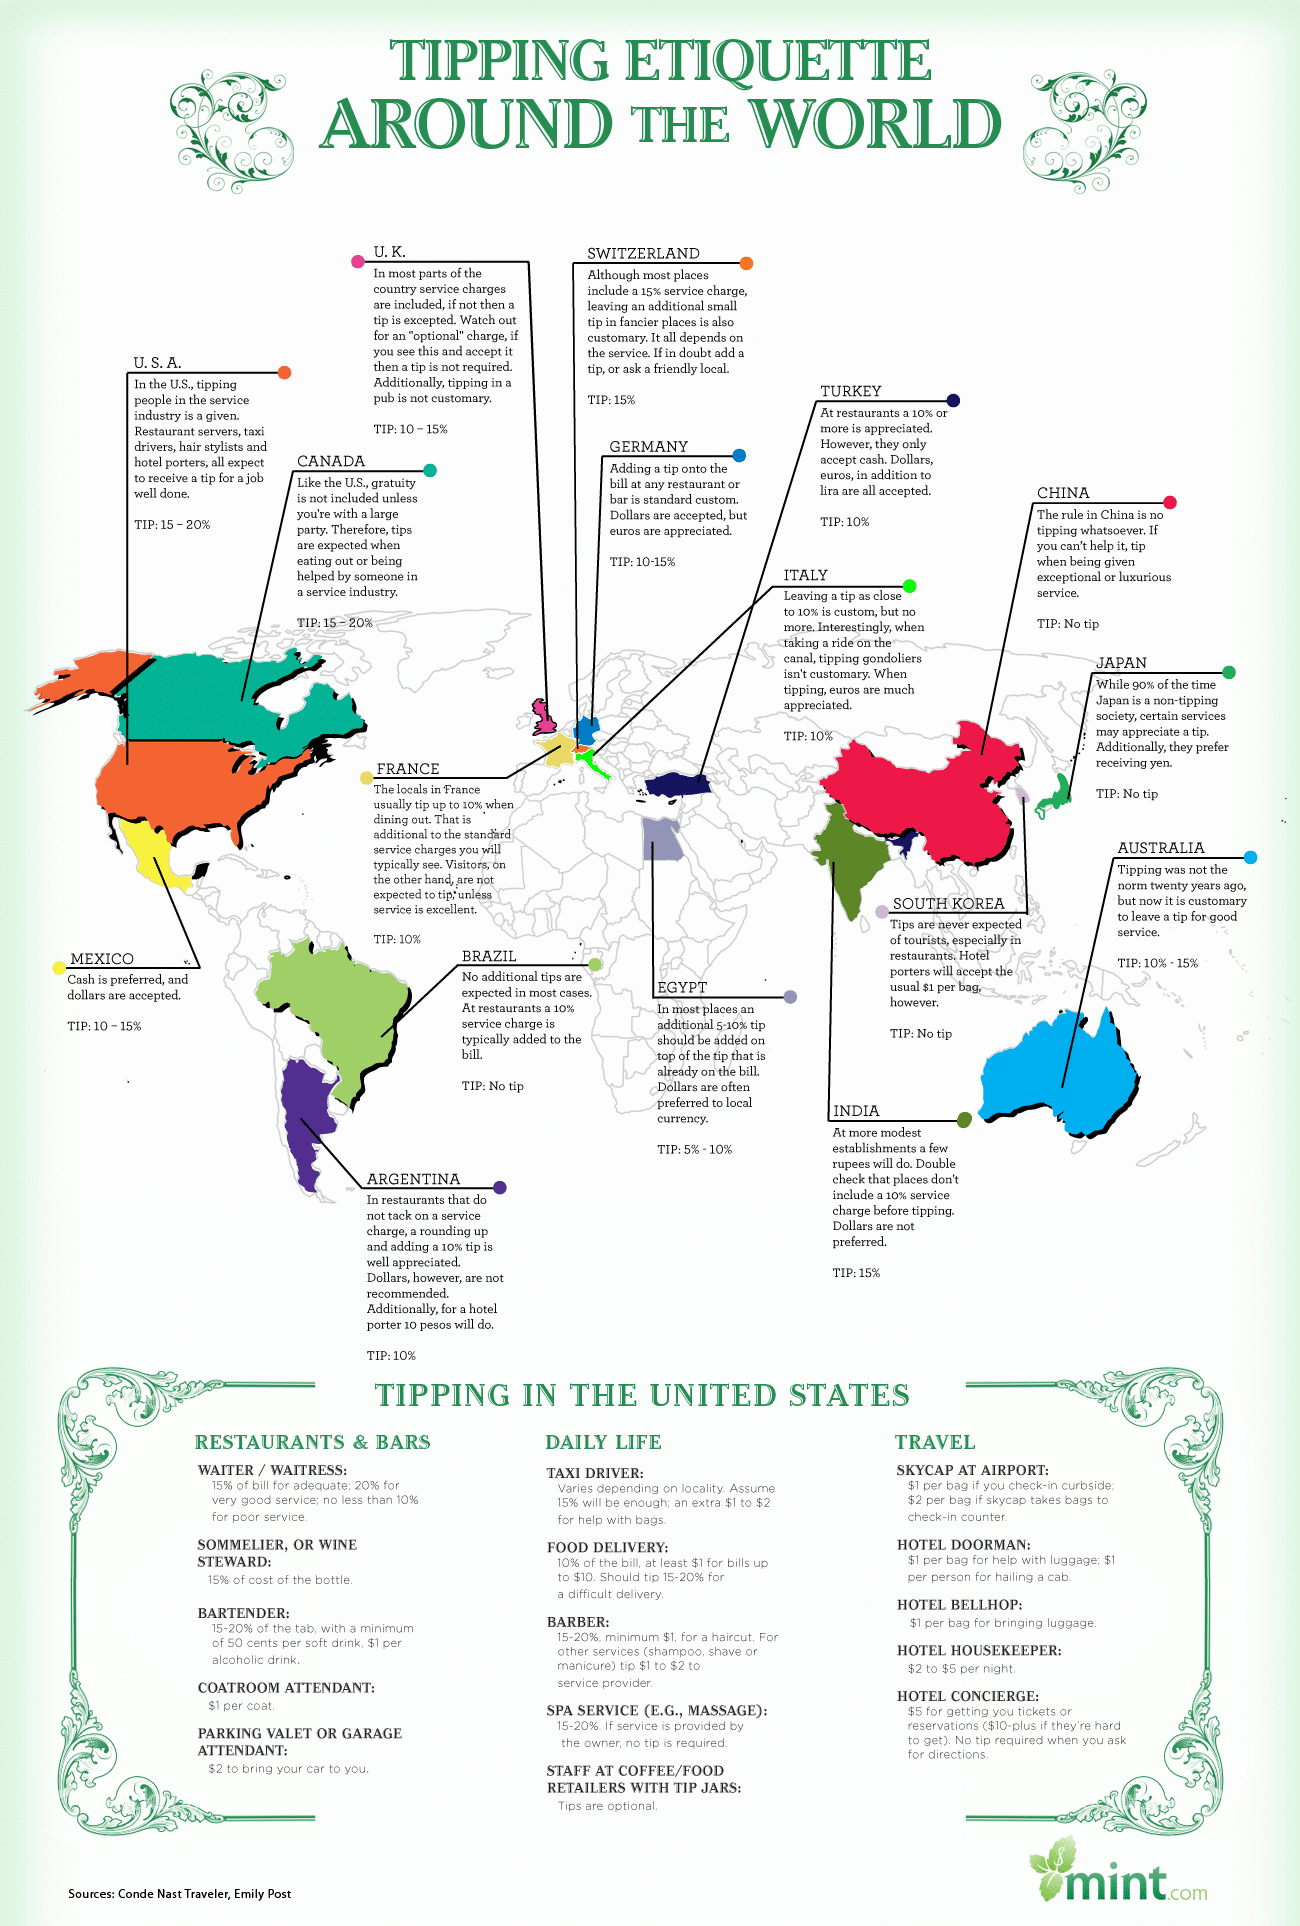 Tipping Etiquette Around The World [Infographic]